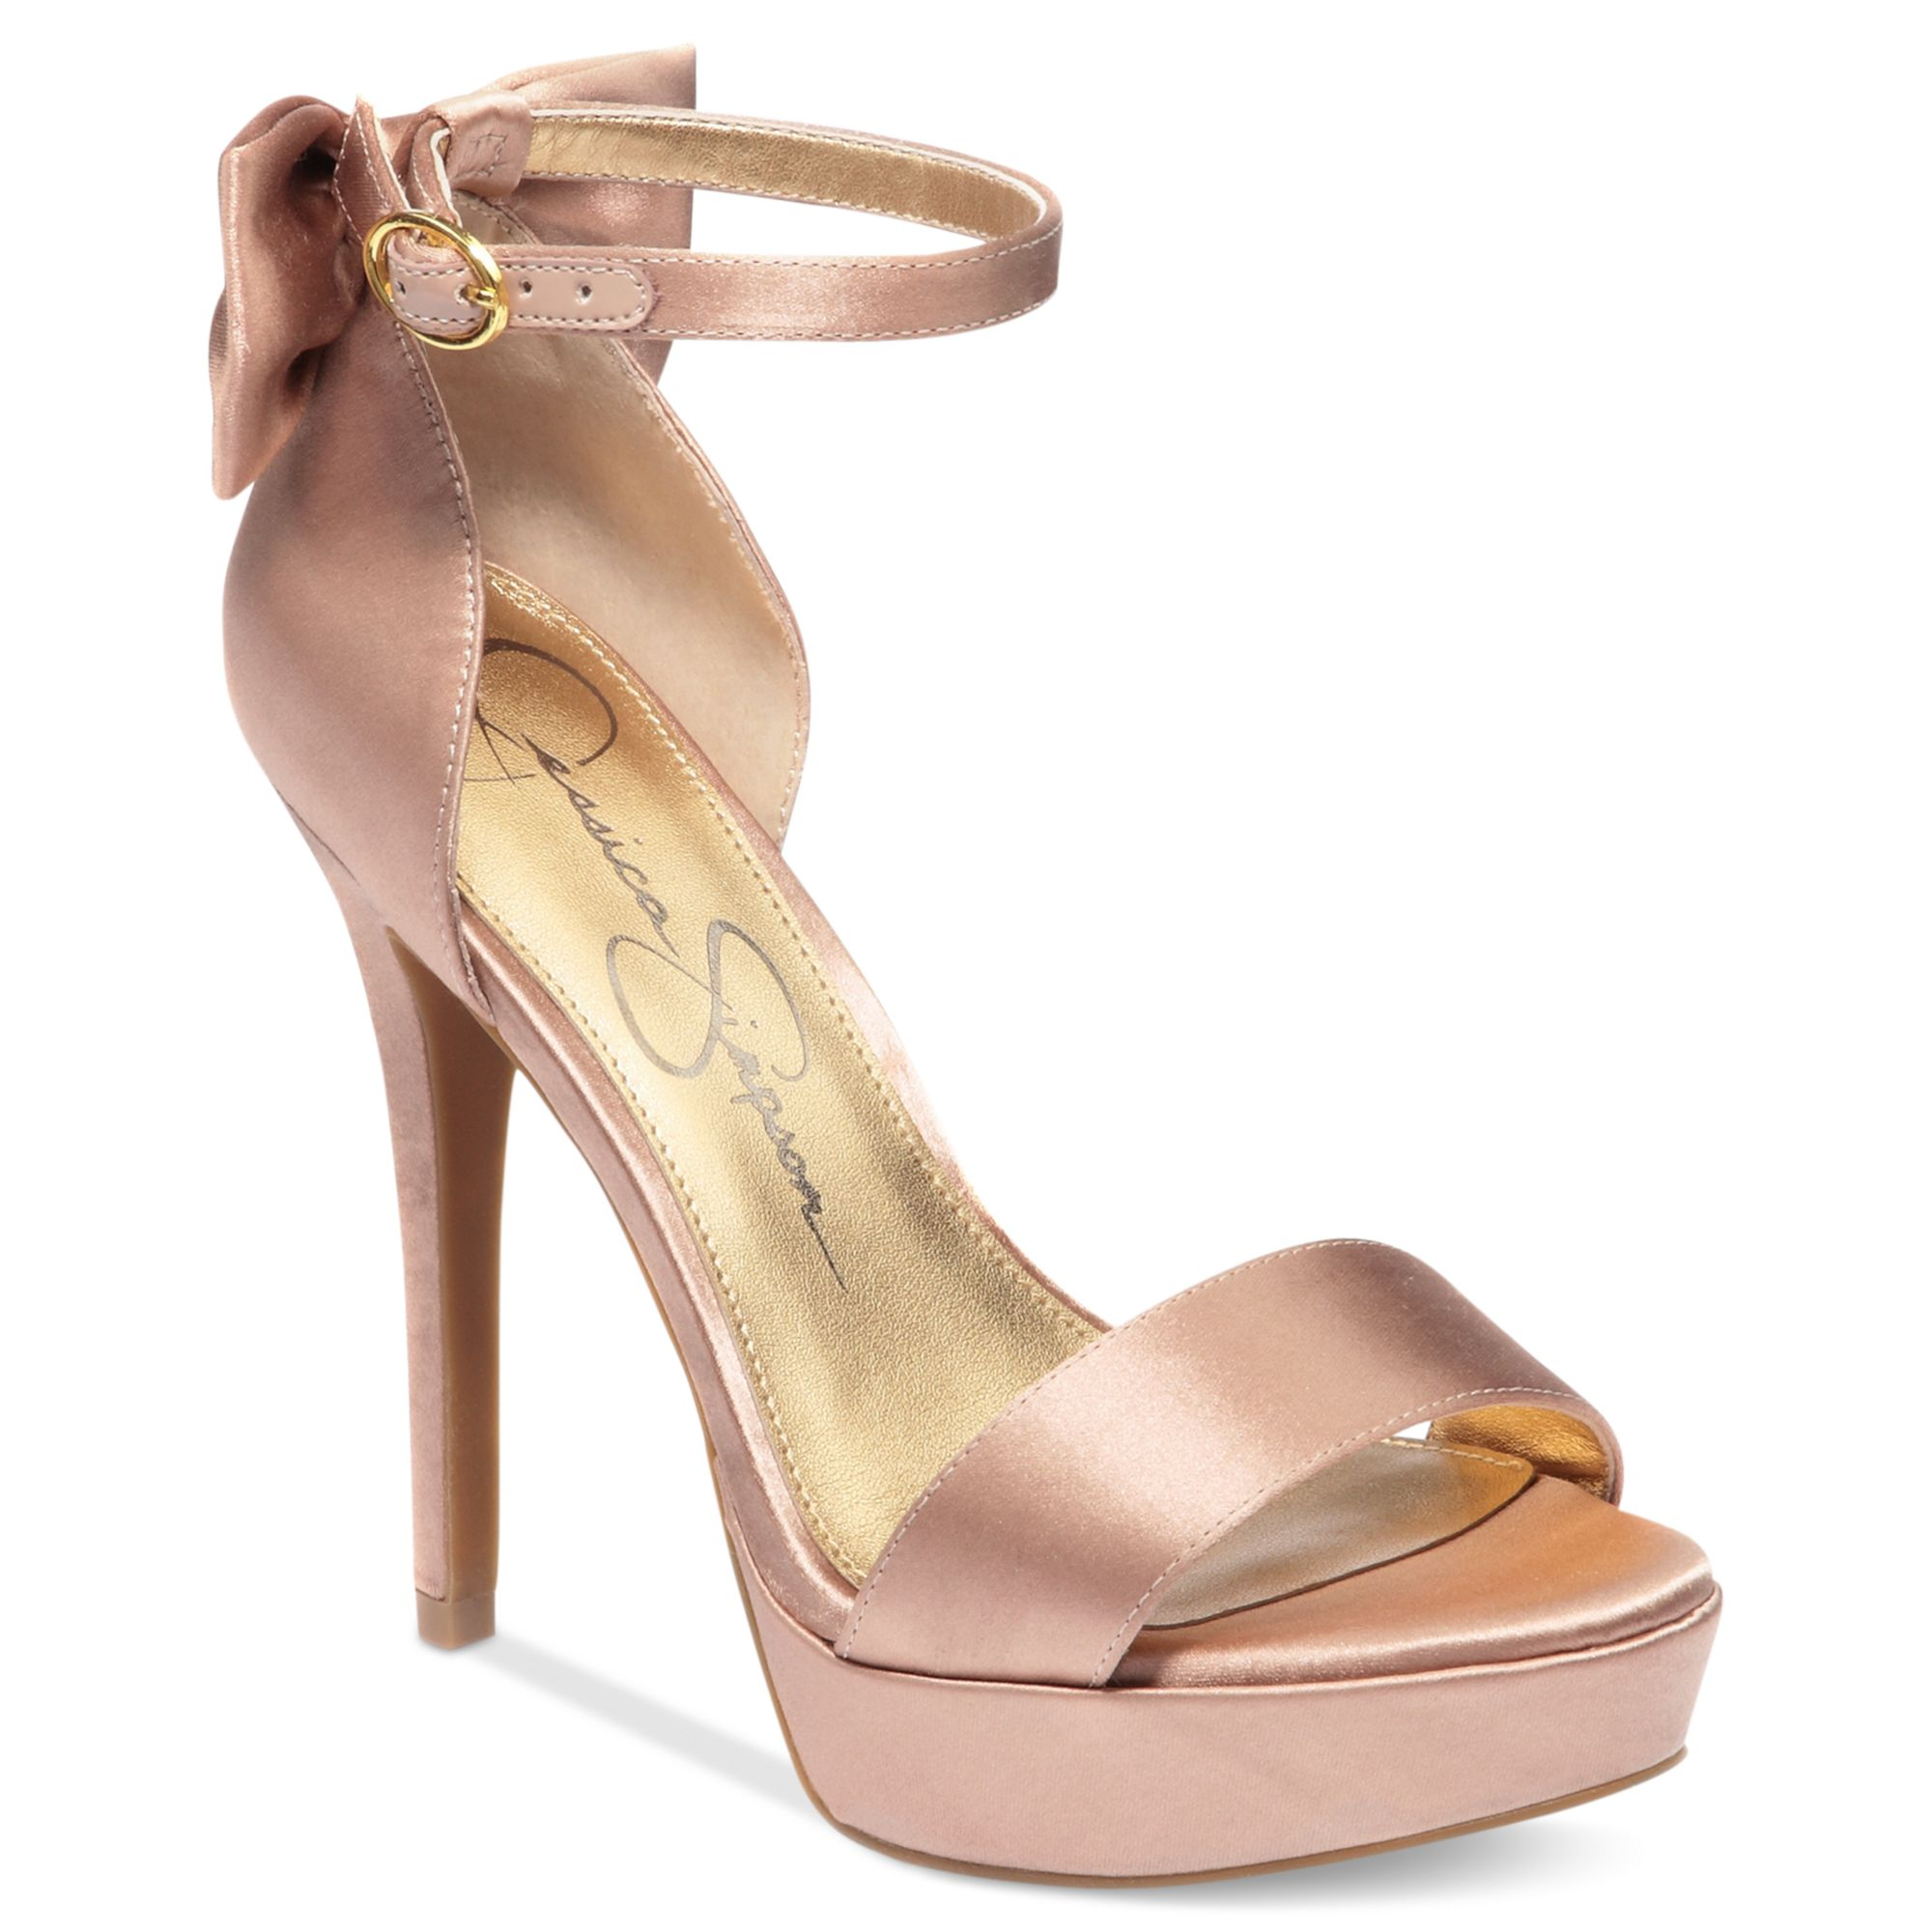 c2282fd6346c Lyst - Jessica Simpson Bowie Platform Dress Sandals in Pink